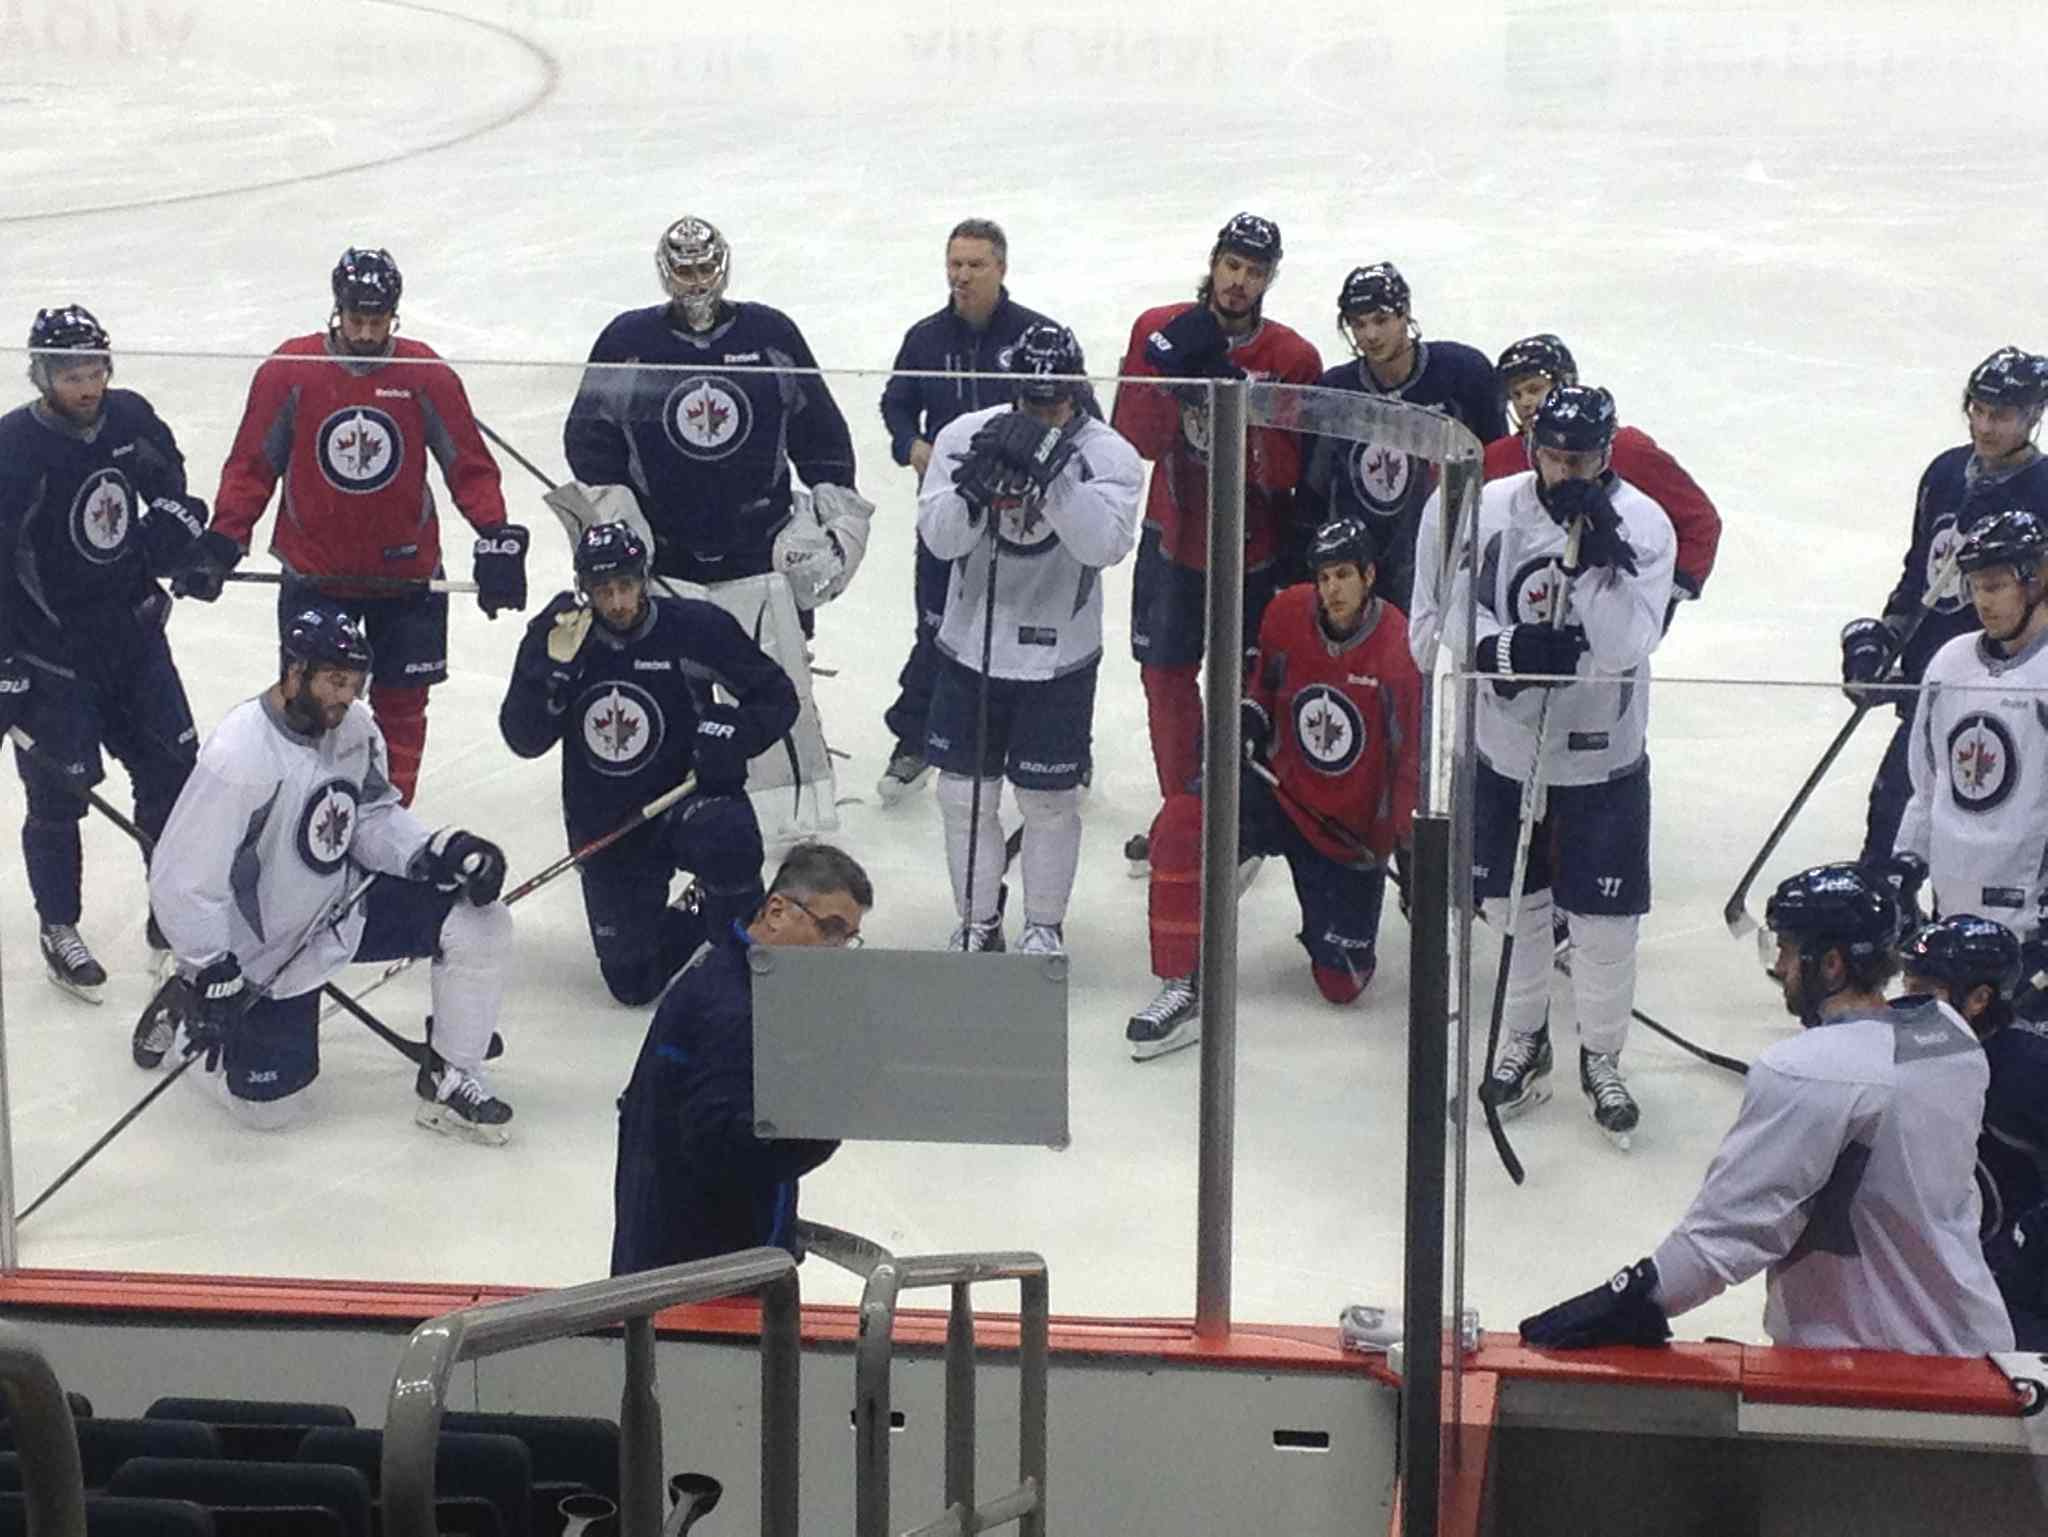 Winnipeg Jets watch as coach Claude Noel draws up a game plan at practice at the MTS Centre Friday morning.  The Jets, now last in the NHL's Central Division at 19-22-5, next play Saturday at home against Columbus.